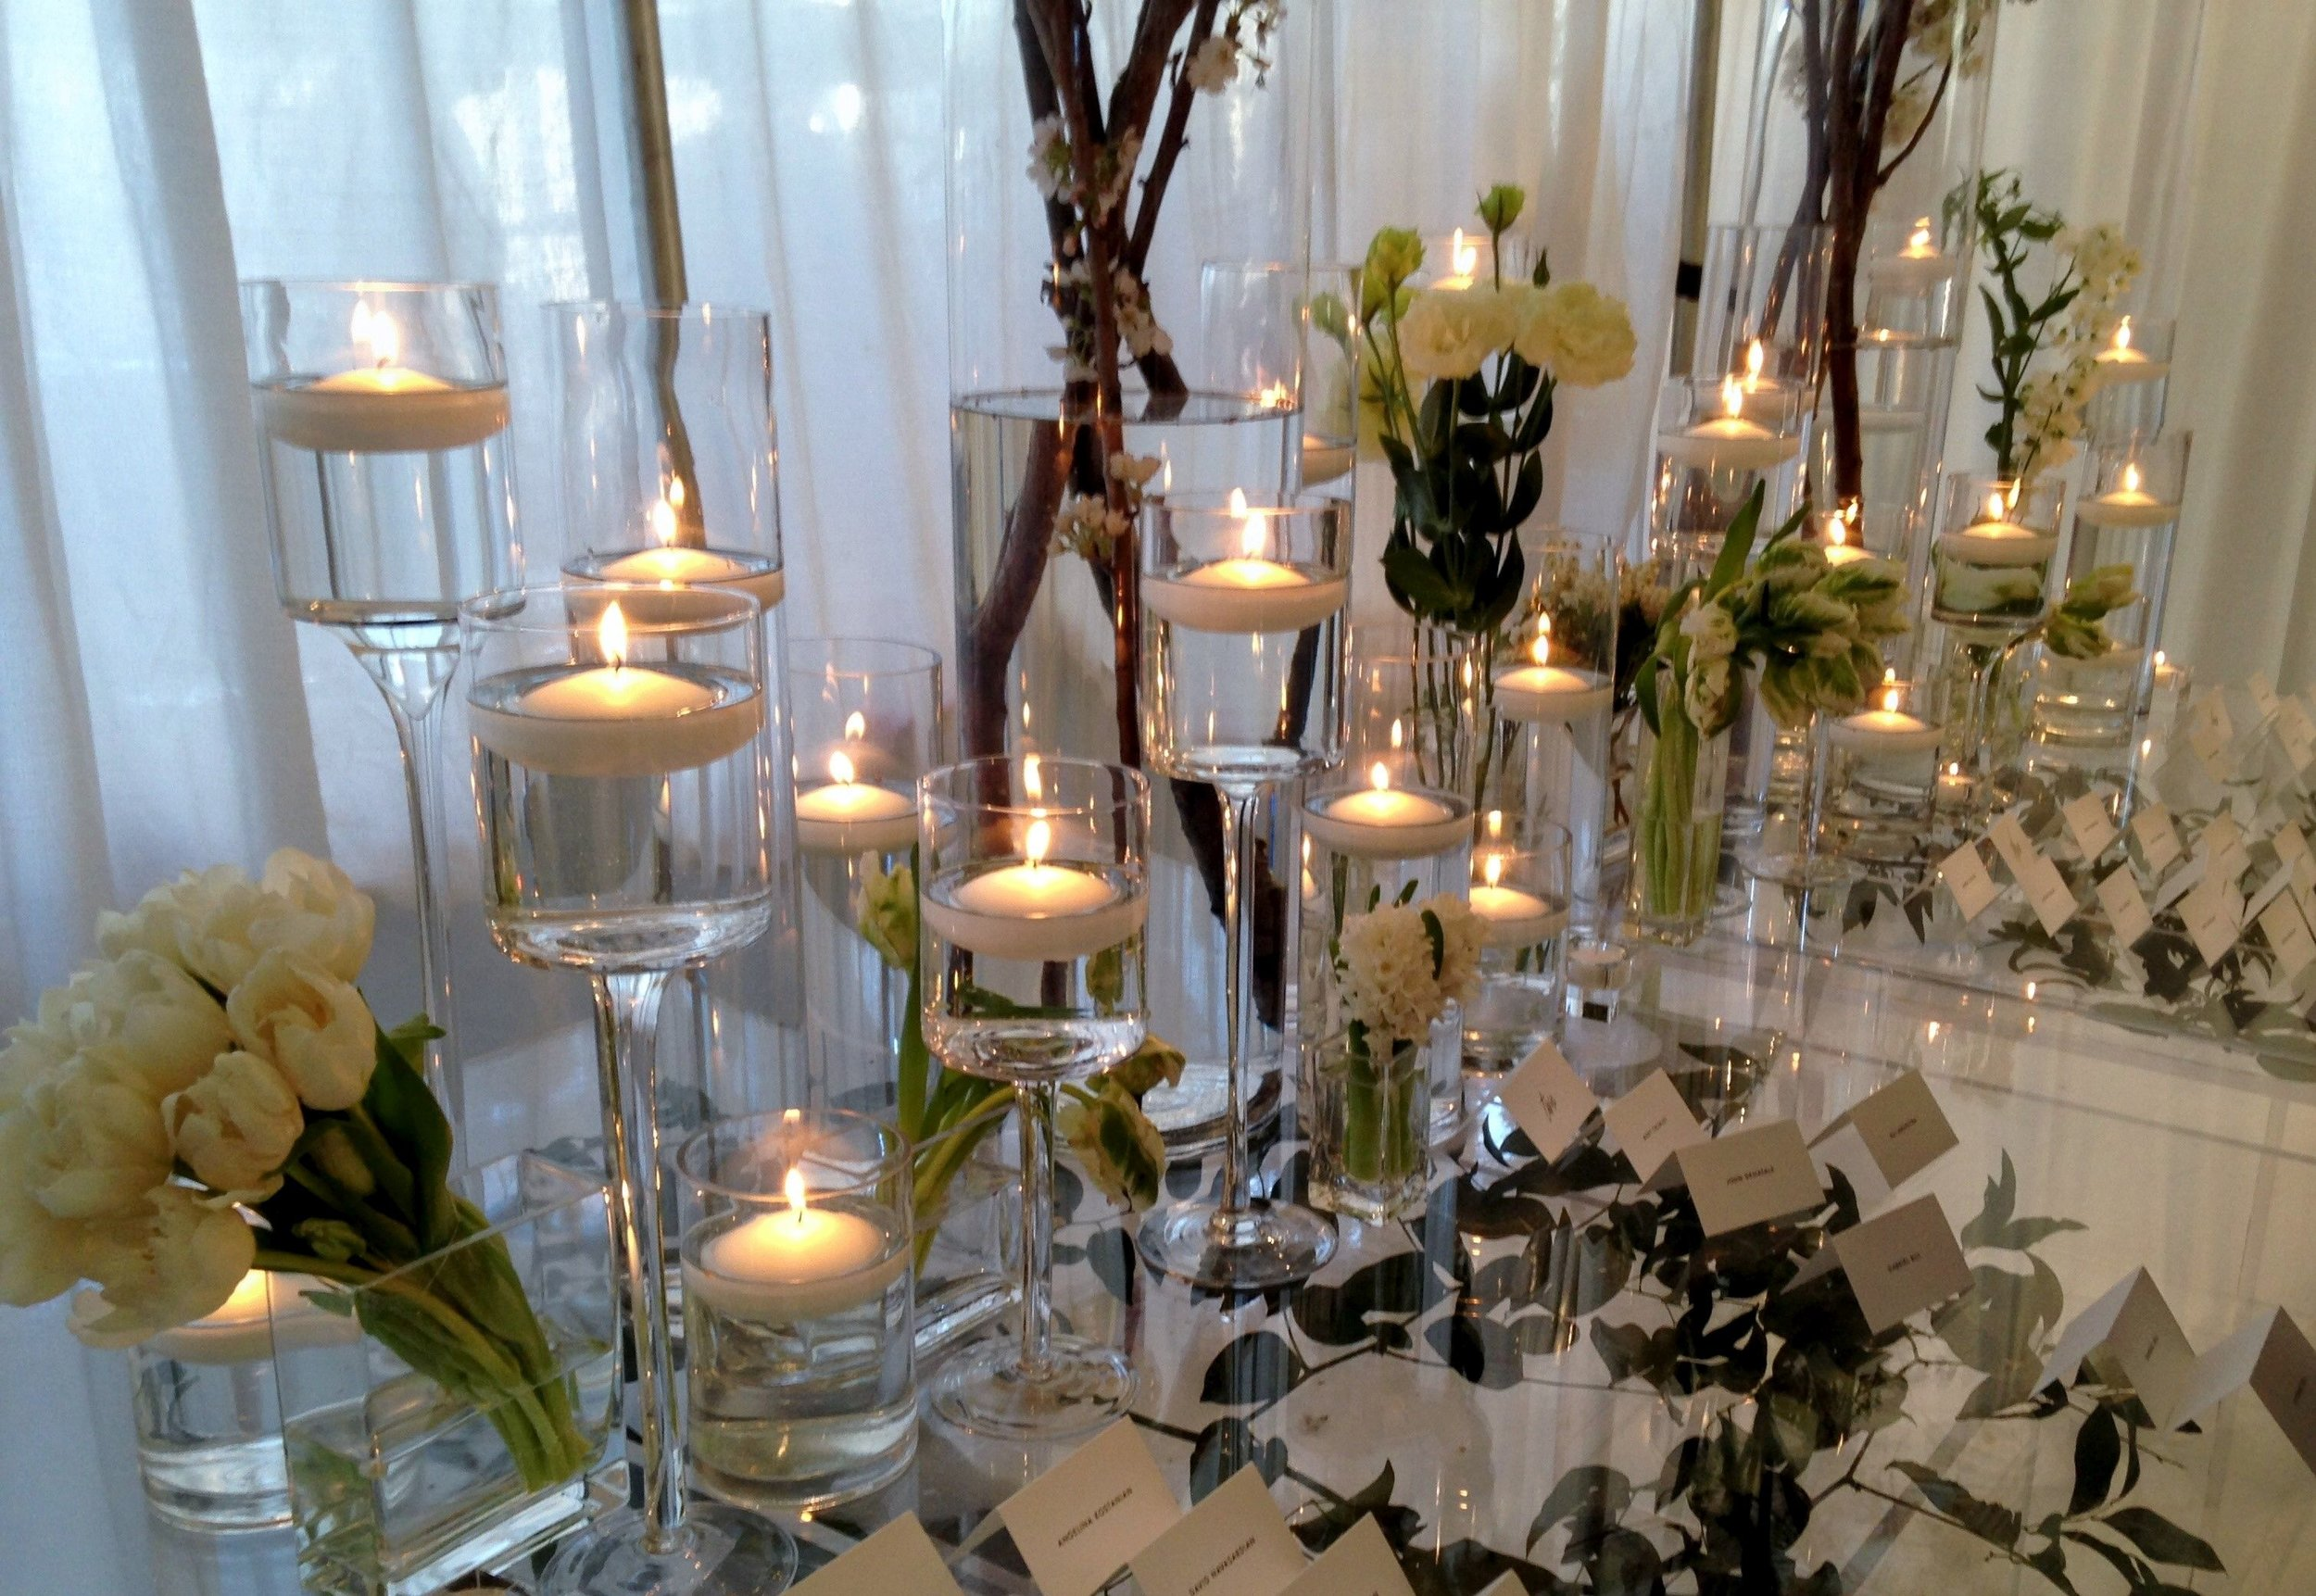 Candles and decor surrounded by simple white tulips in elegant wedding design by Bouquets & Beyond